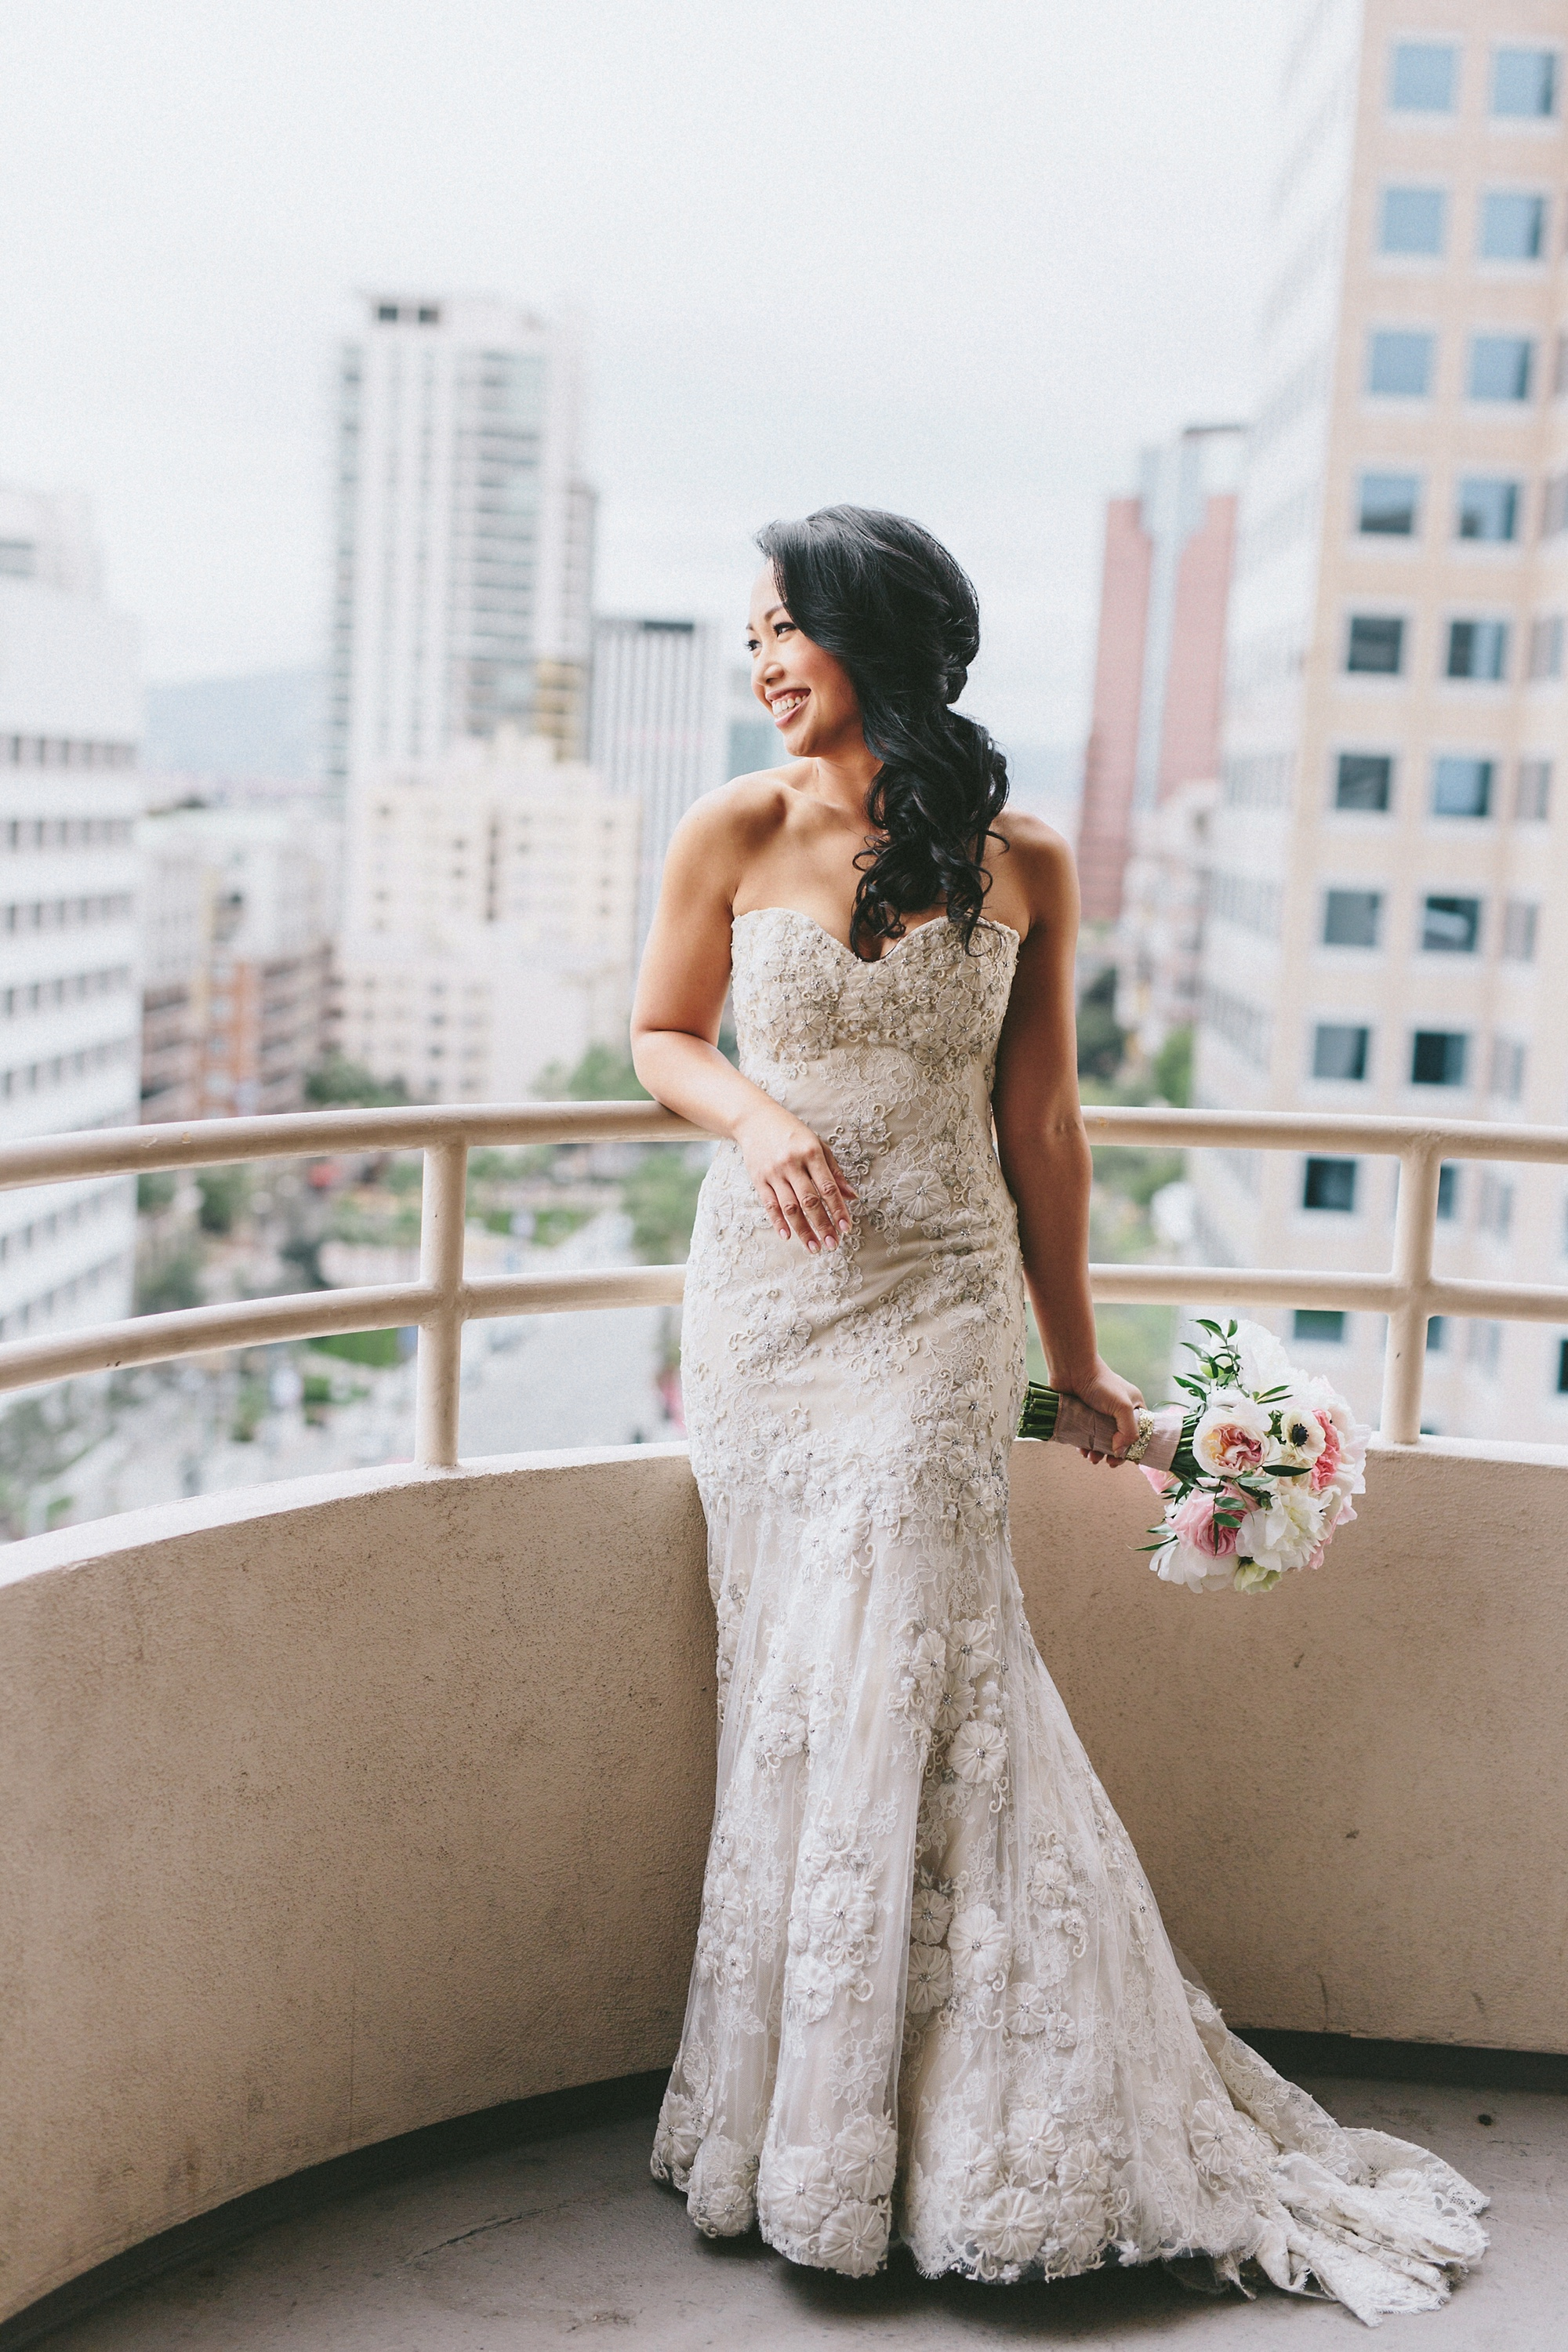 Former client of mine looking extra fabulous on her special day.